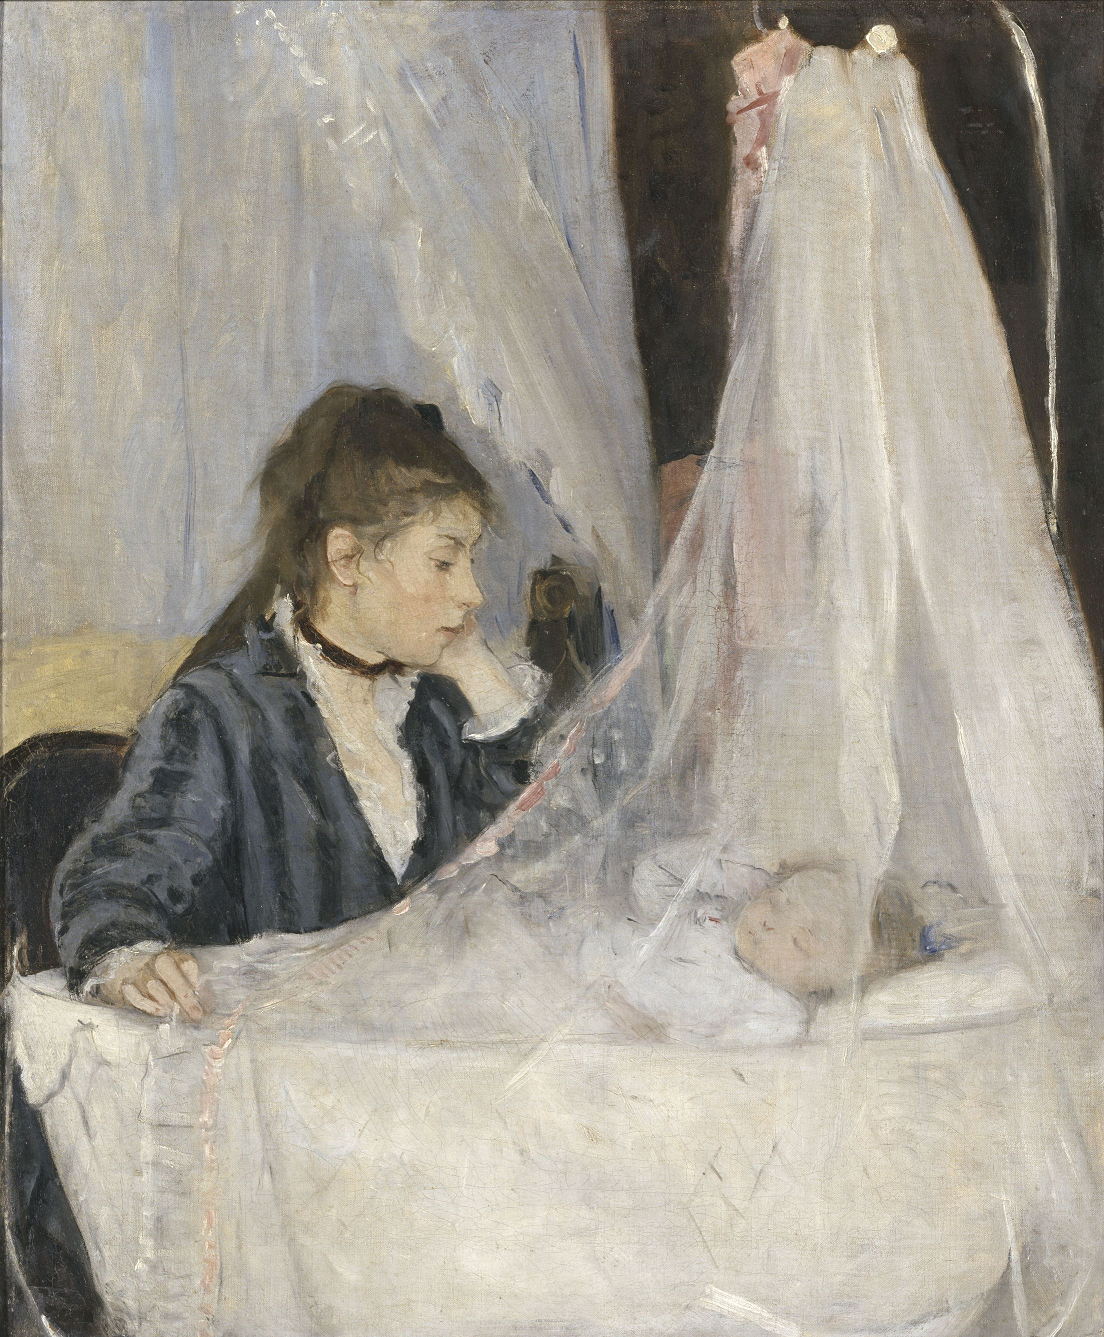 Berthe Morisot, The Cradle, 1872 Oil on canvas, 56 x 46 cm Musée d'Orsay, Paris